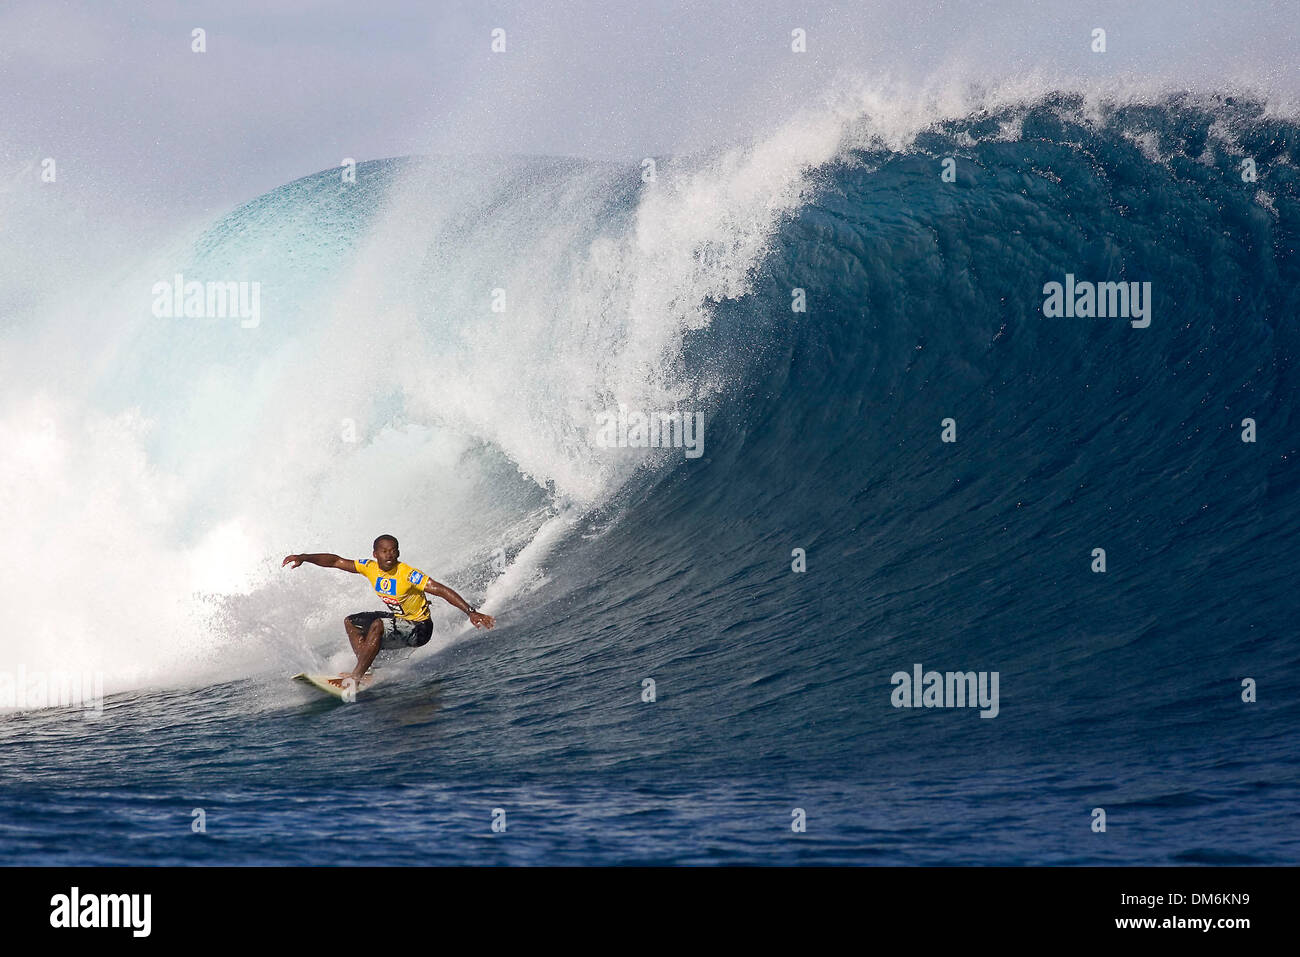 May 29, 2005; Tavarua island, Fiji, Fiji; Fijian wildcard surfer, Isei Tokovou. pictured in round two of the Globe WCT Fiji at Tavarua Island today. Tokovou lost out to 2001 ASP world champion CJ Hobgood in the solid 2 Ð 3 metre waves at Cloudbreak reef. Mandatory Credit: Photo by Pierre Tostee/ZUMA Press. (©) Copyright 2005 by Pierre Tostee - Stock Image